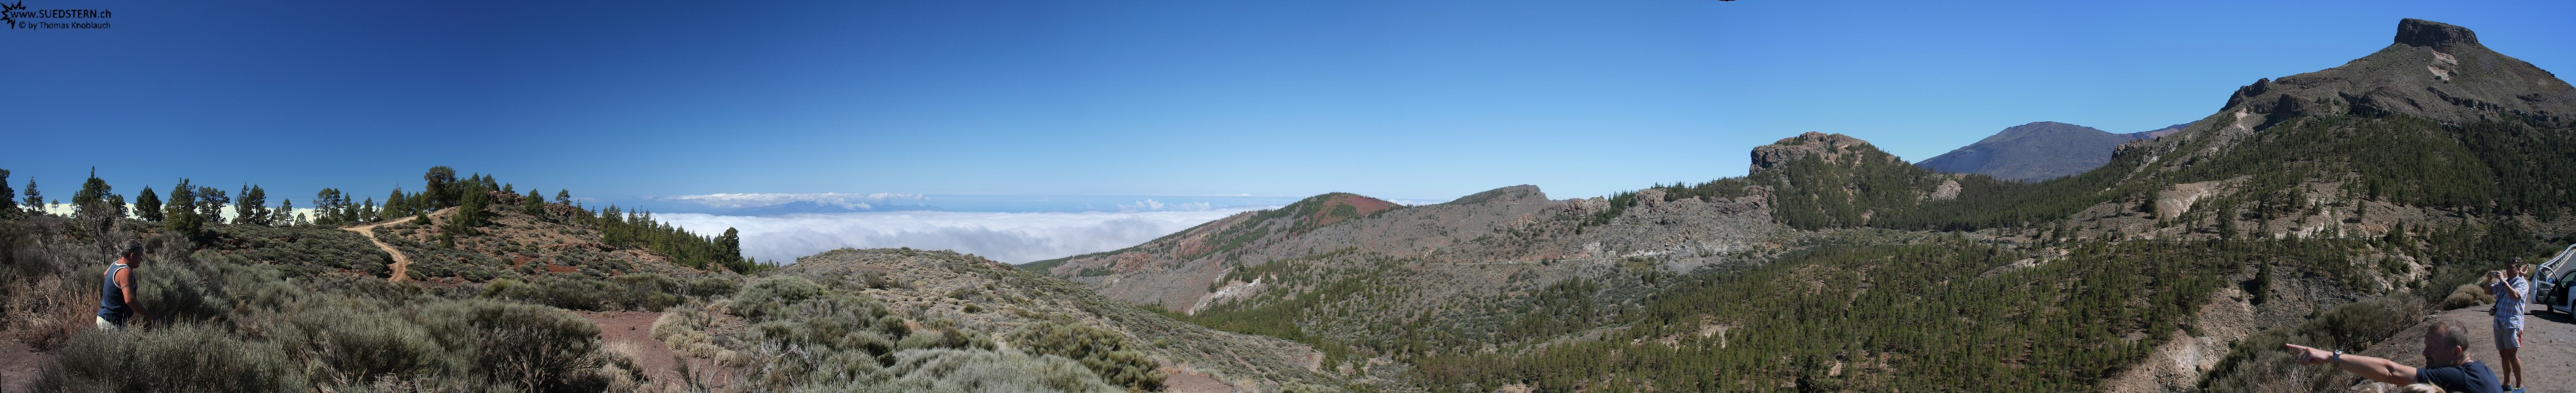 2007-09-06 - 02 - Teneriffa, before sothern entering of Teide Caldera